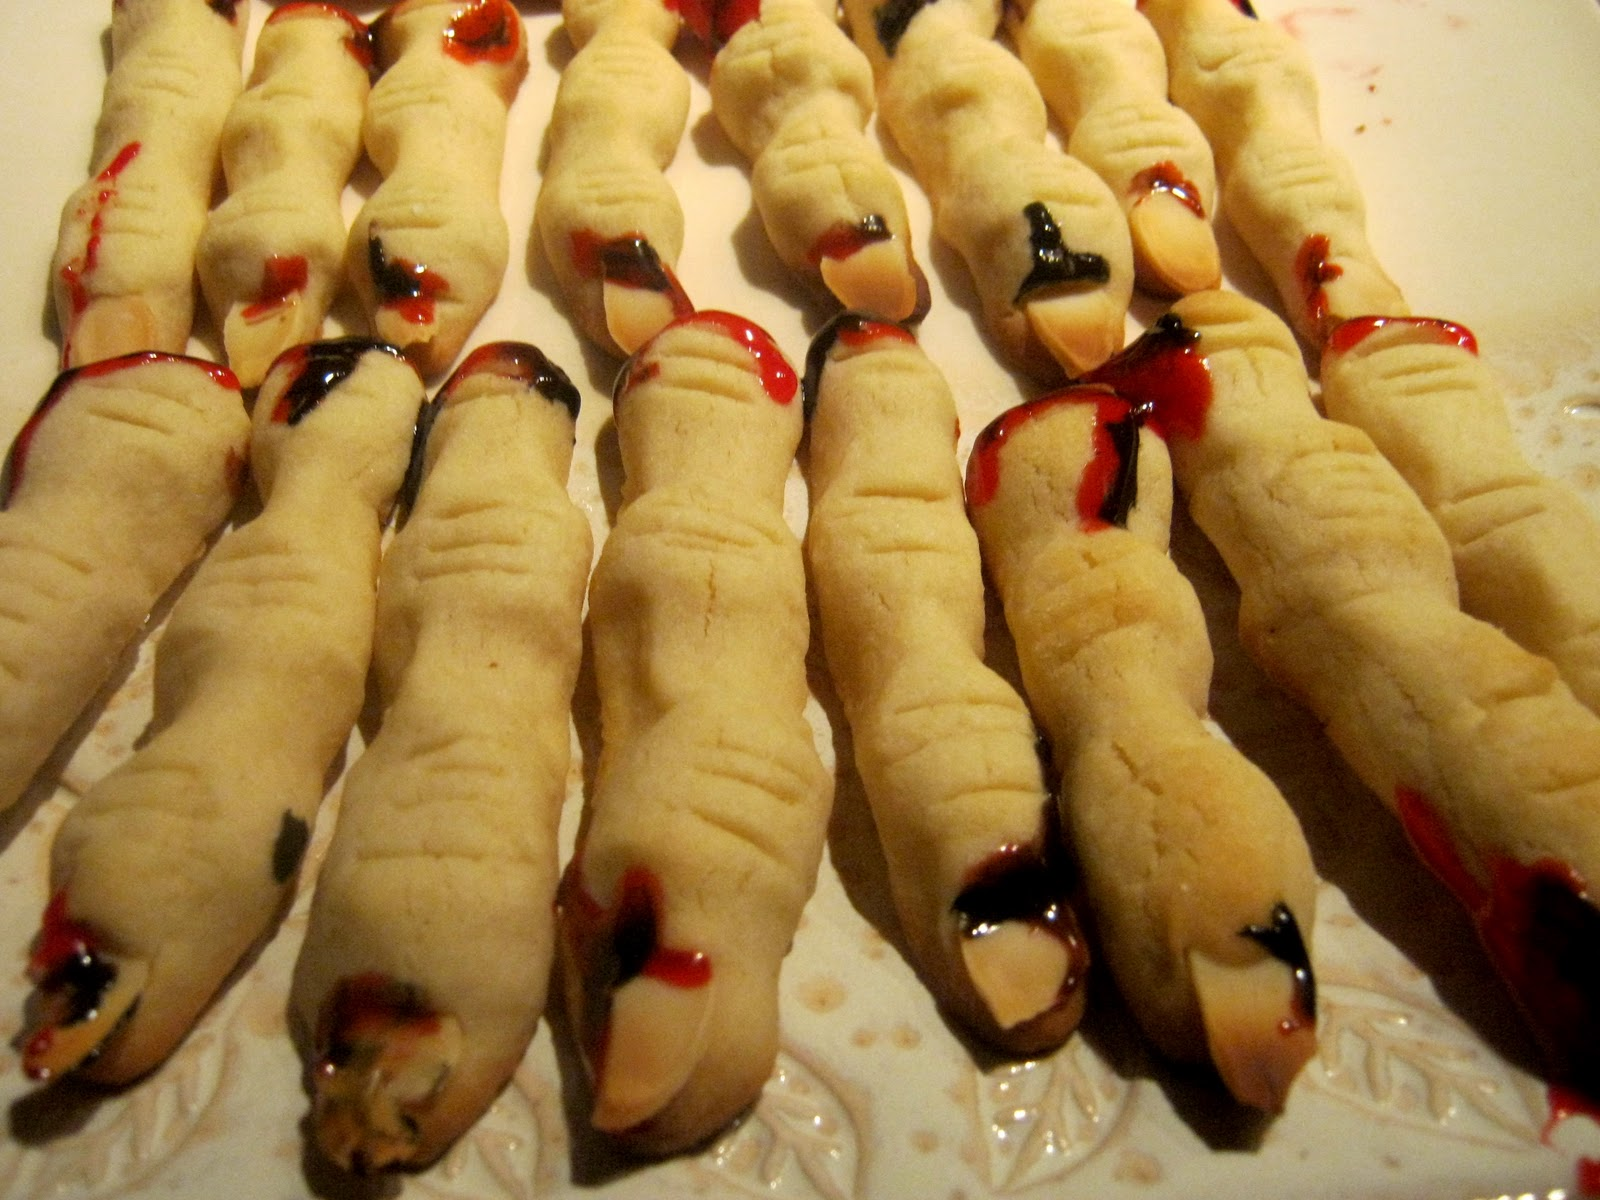 HomeBaked: Halloween Severed Finger Cookies